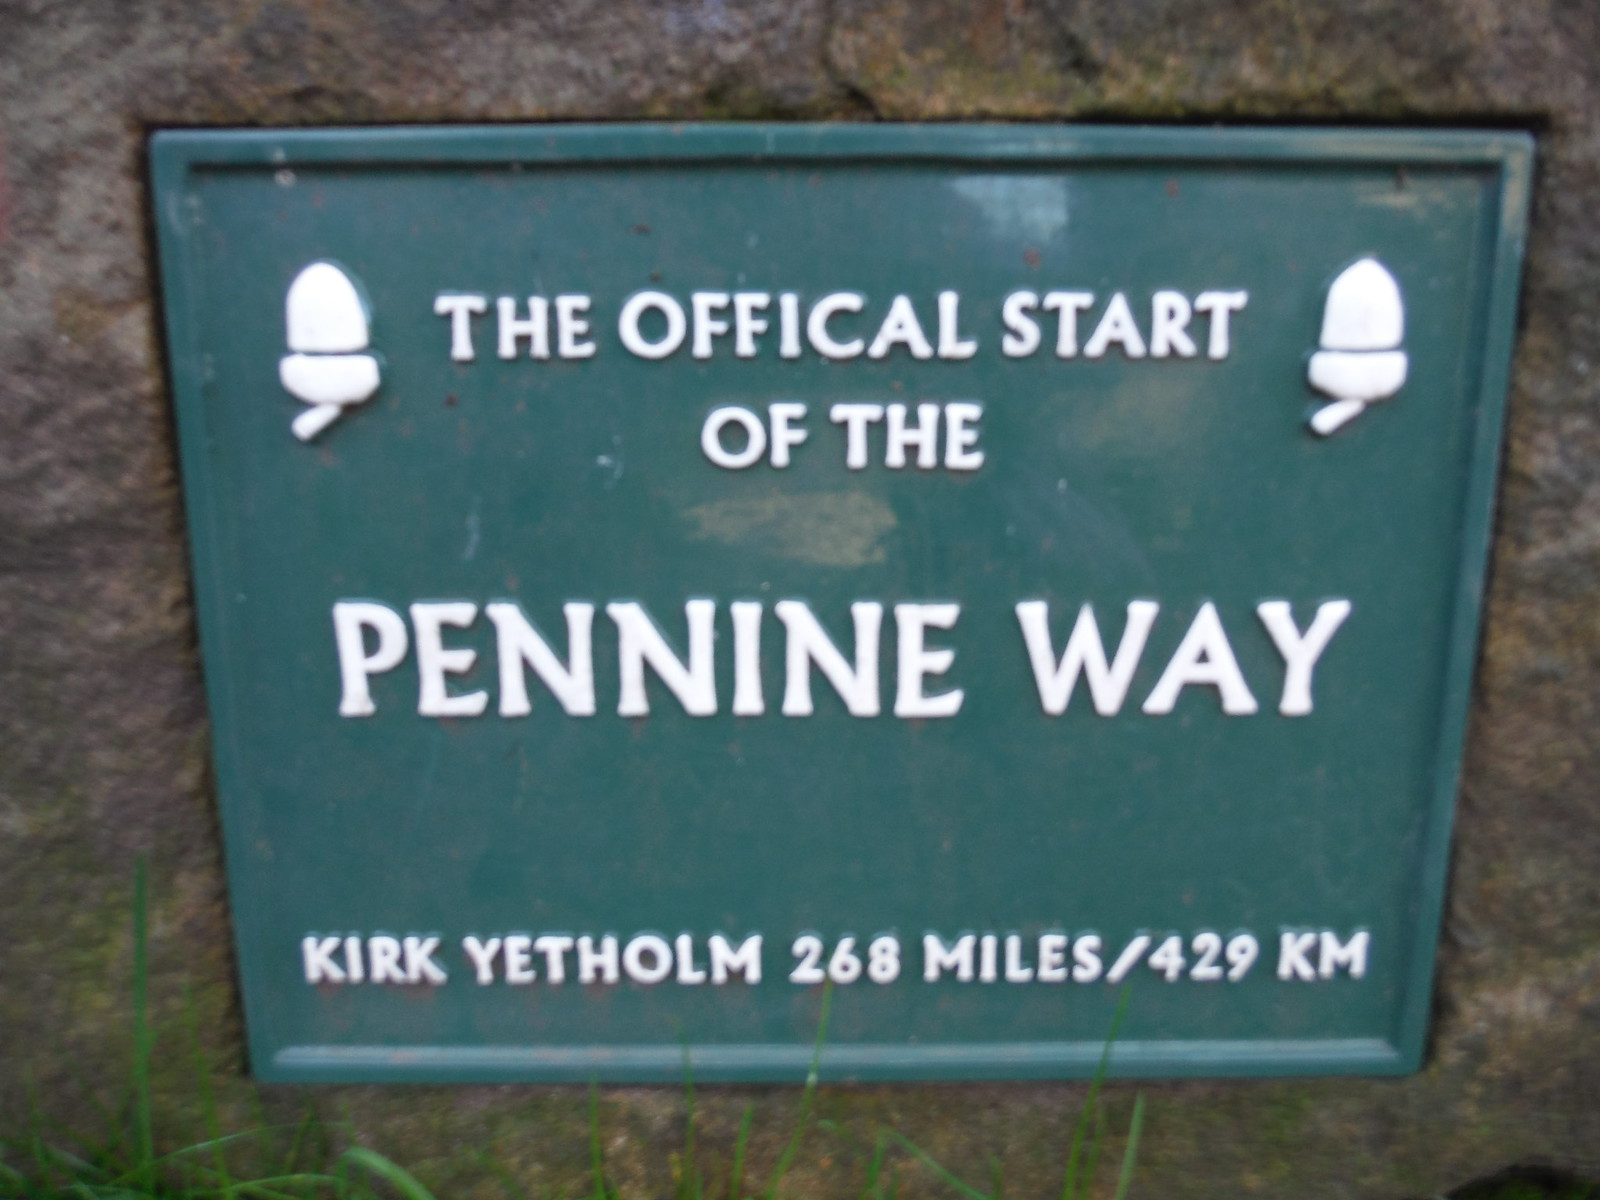 Official Start of the Pennine Way, Edale SWC Walk 304 - Kinder Scout Circuit (from Edale)